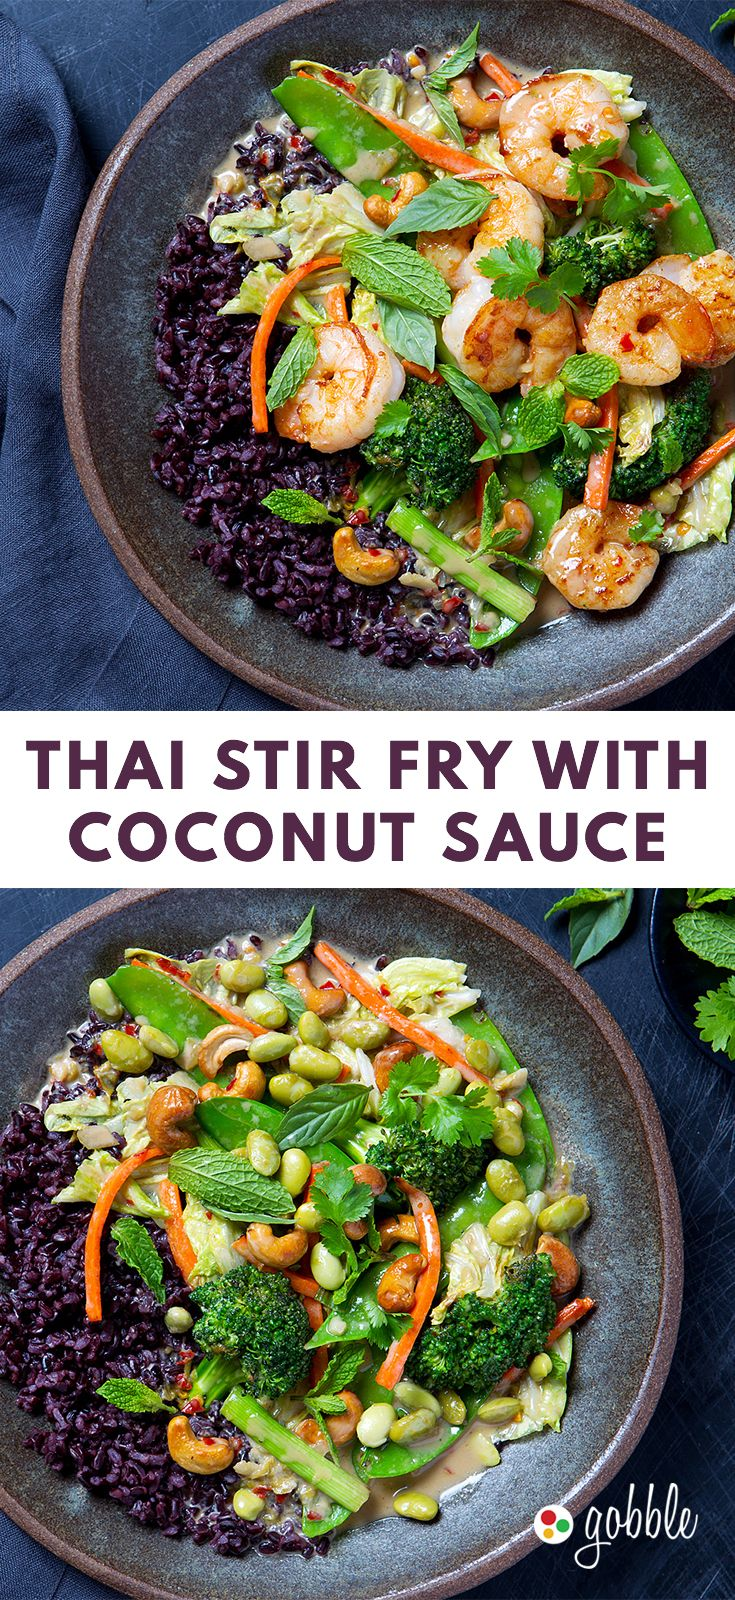 Gobble thai stir fry with coconut sauce dinner in 15 minutes gobble thai stir fry with coconut sauce dinner in 15 minutes dinner for two quick and easy recipes new recipes to try cook at home food forumfinder